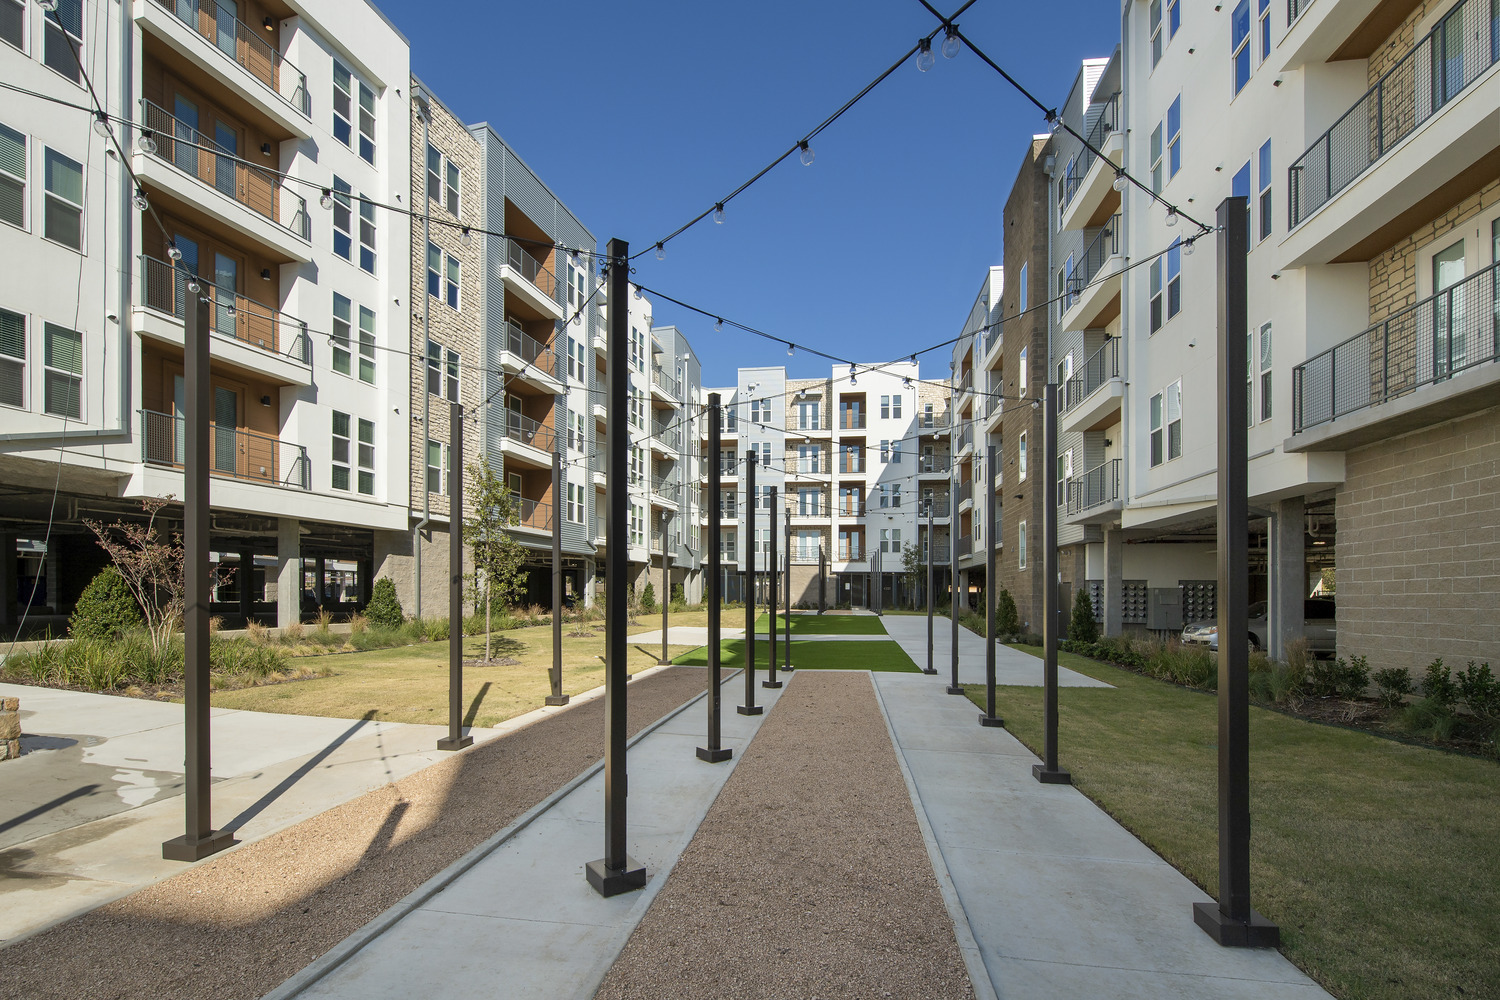 CBG builds The View of Fort Worth, a 300-Unit Apartment Community with Amenities in Fort Worth, TX - Image #5